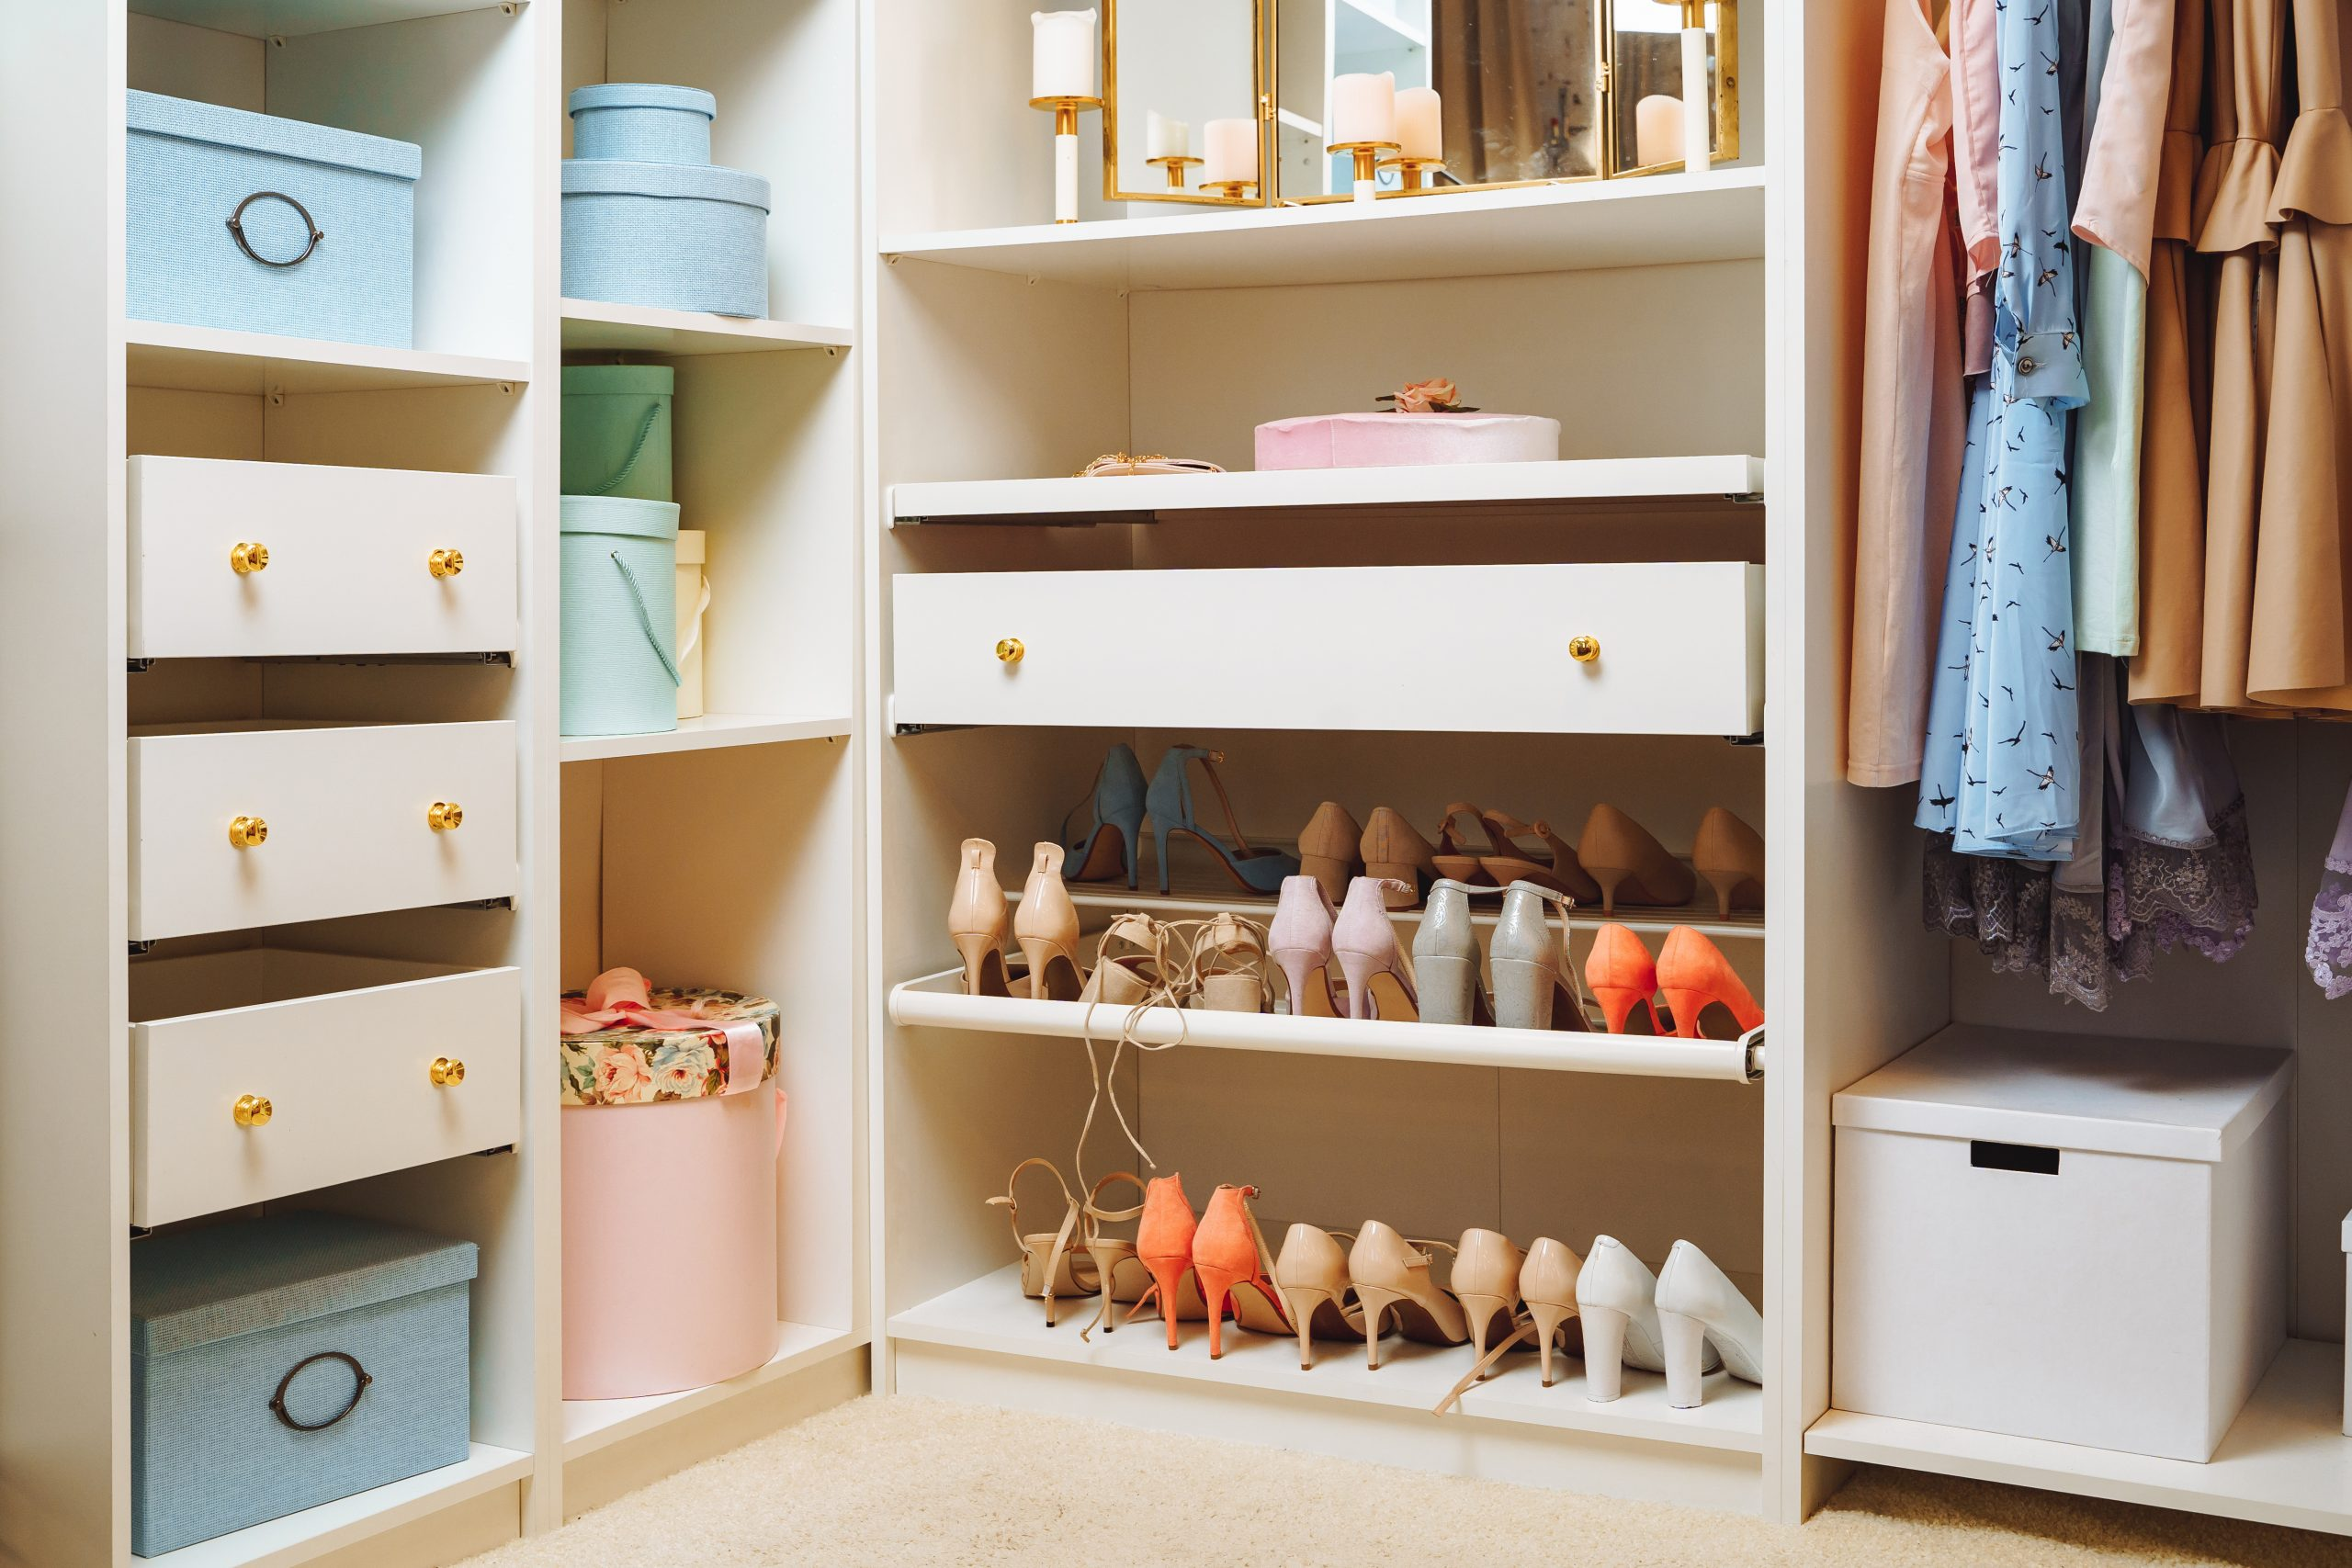 Large wardrobe with stylish women's clothing, shoes, accessories and boxes. Organization of storage space and fashion concept.